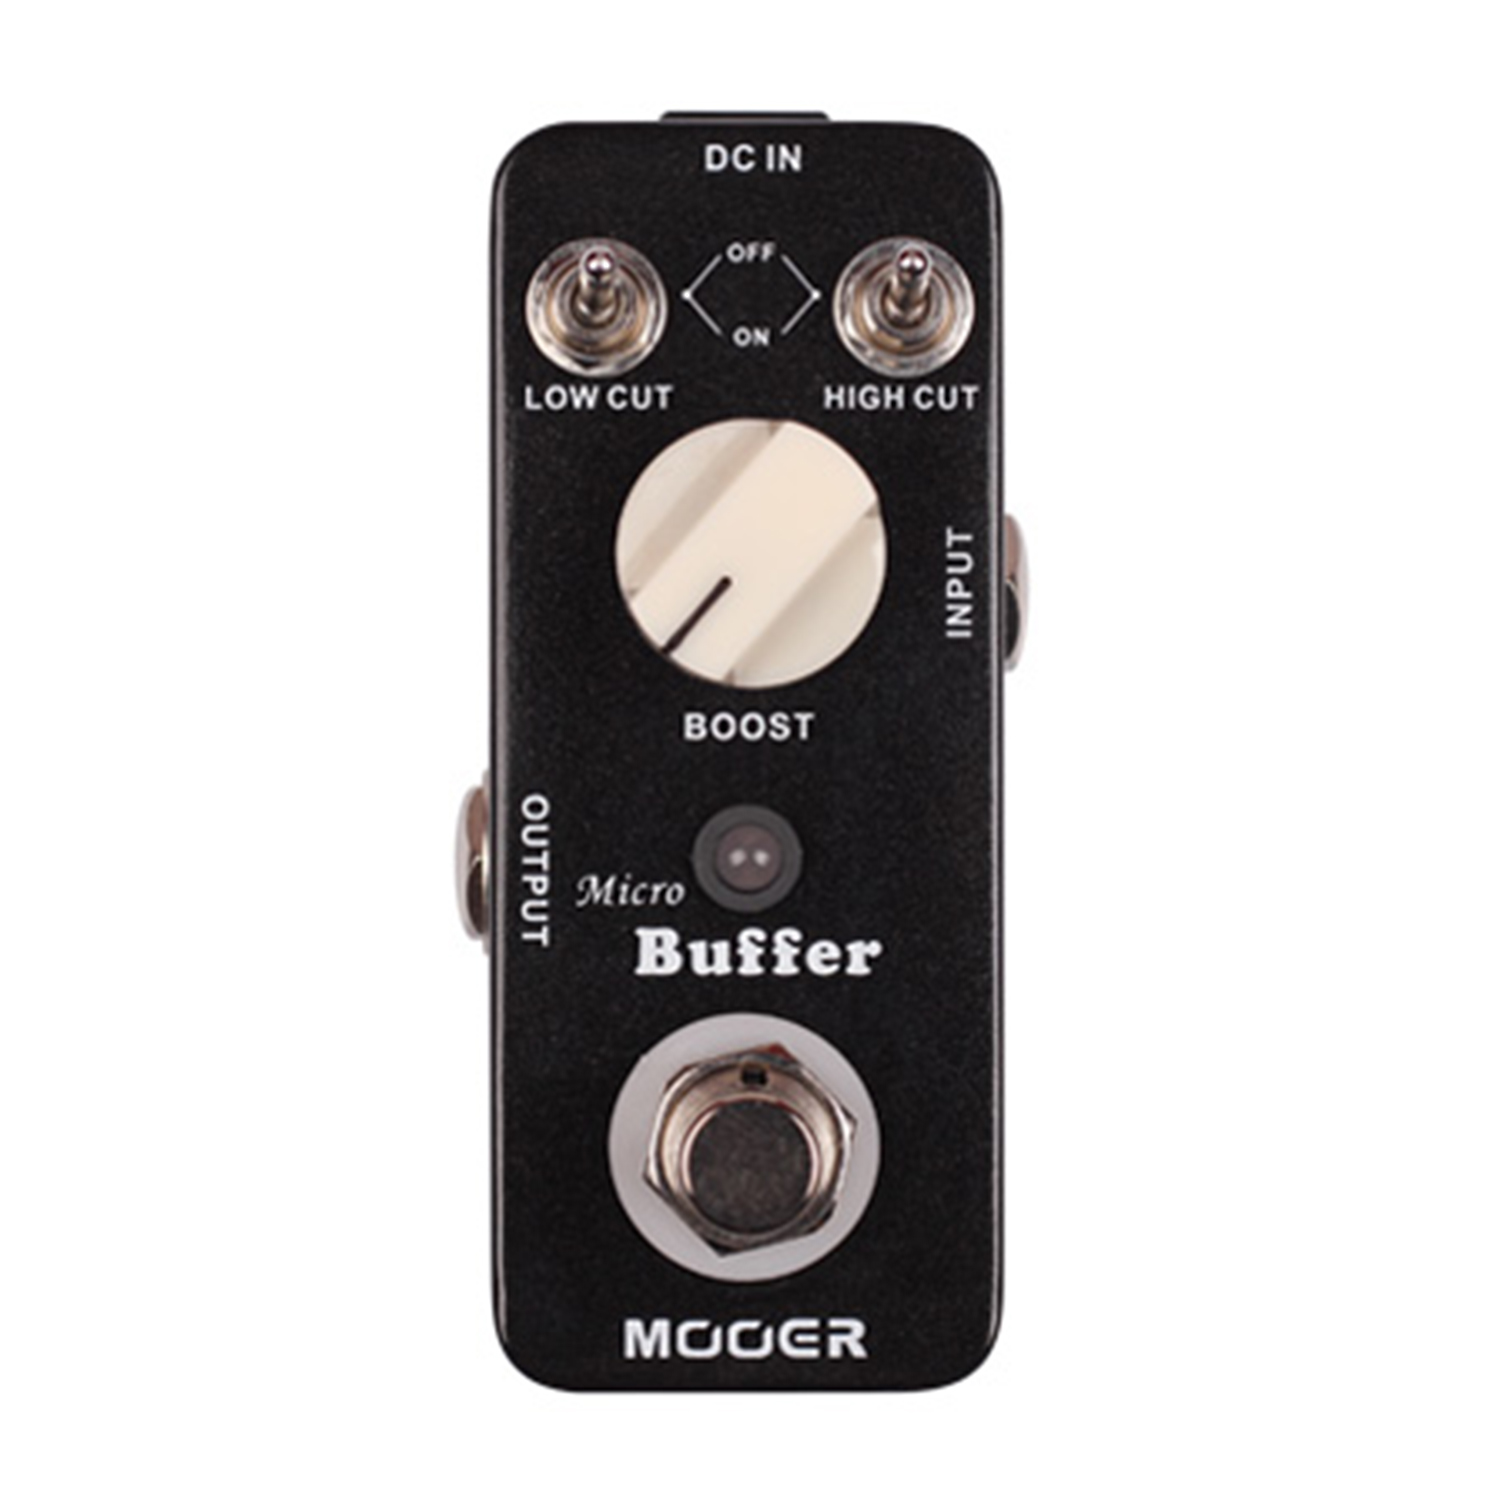 Mooer Micro Buffer Guitar Effect Pedal Boost Knob High Cut Low Cut Switch mooer flex boost guitar pedal with wide gain range boost enough working along as a best overdrive